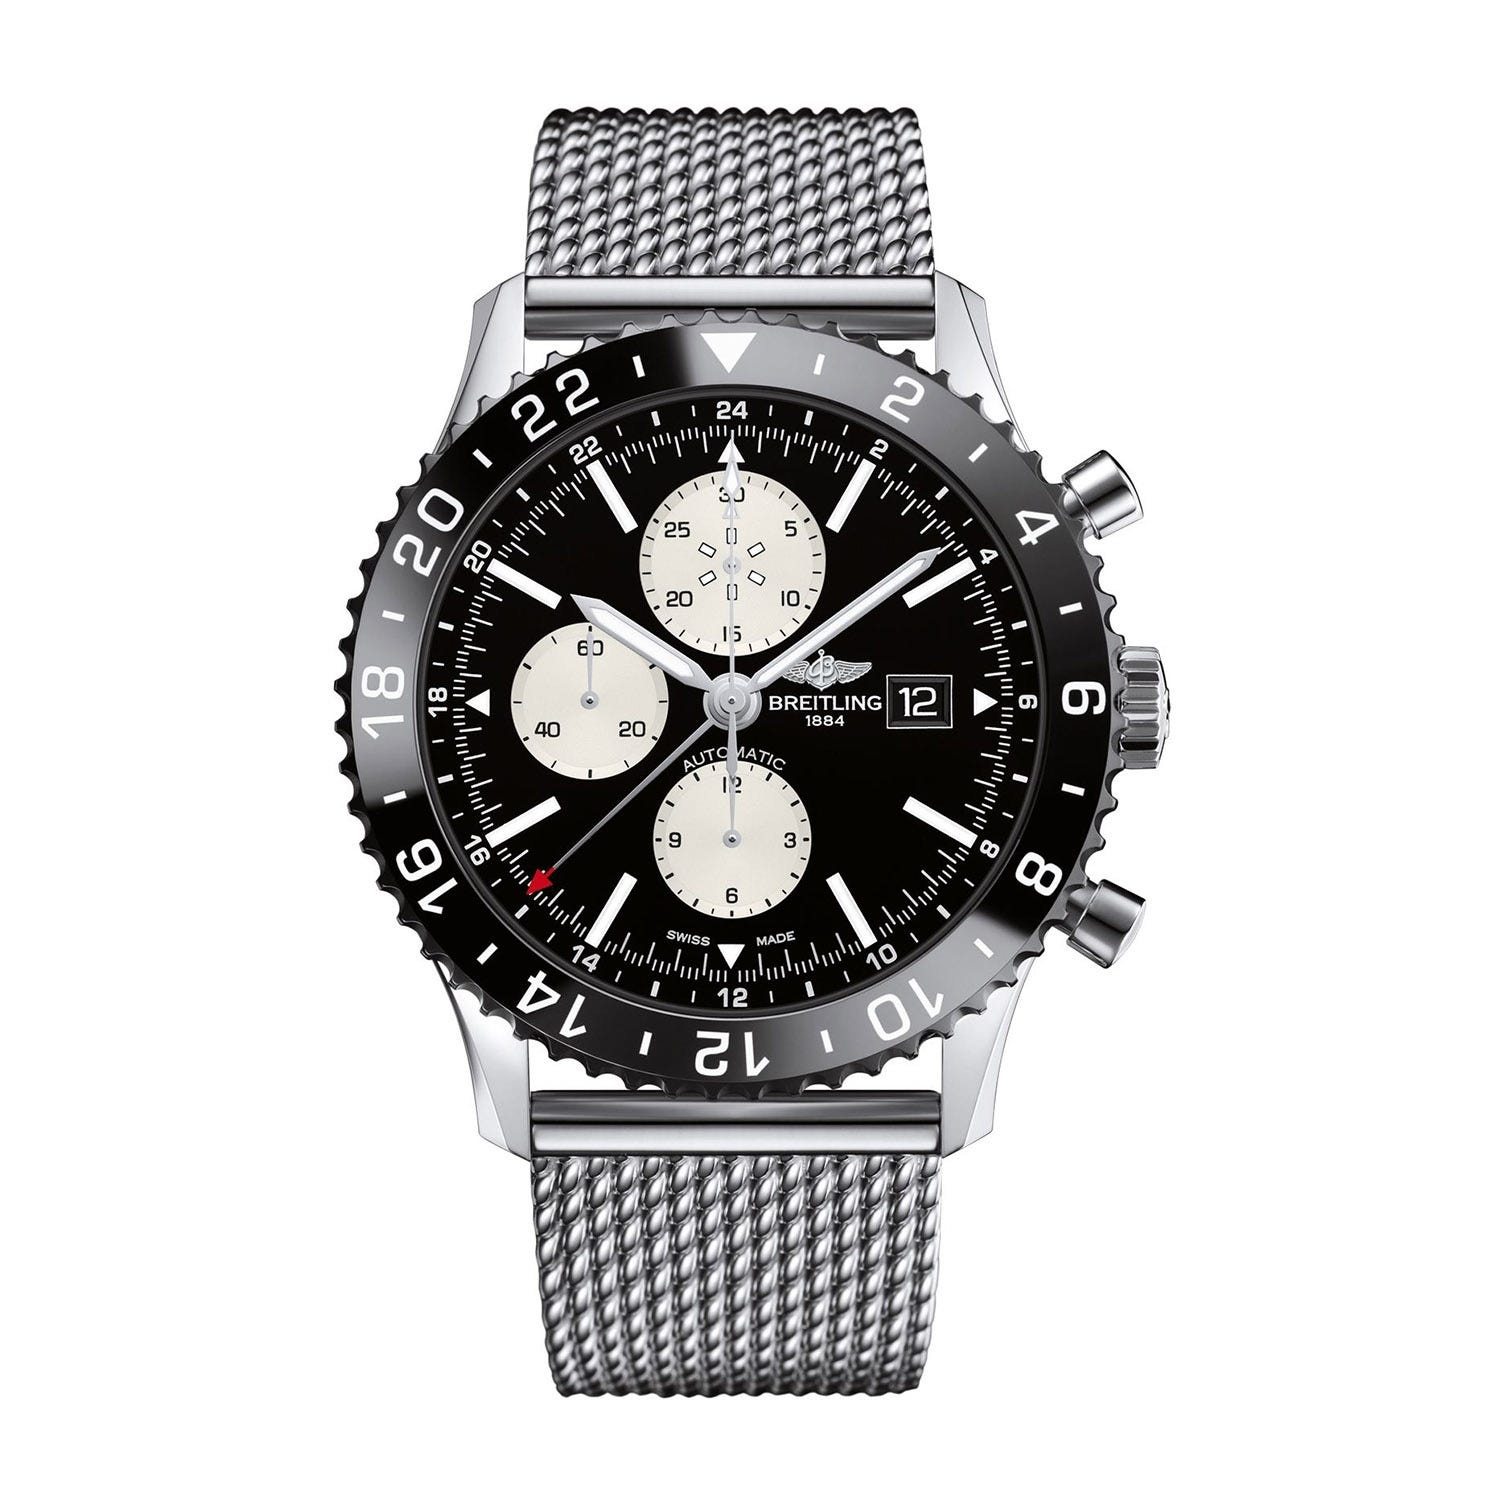 Breitling Chronoliner 46mm automatic chronograph black dial with white sub dials on a steel case and  bracelet